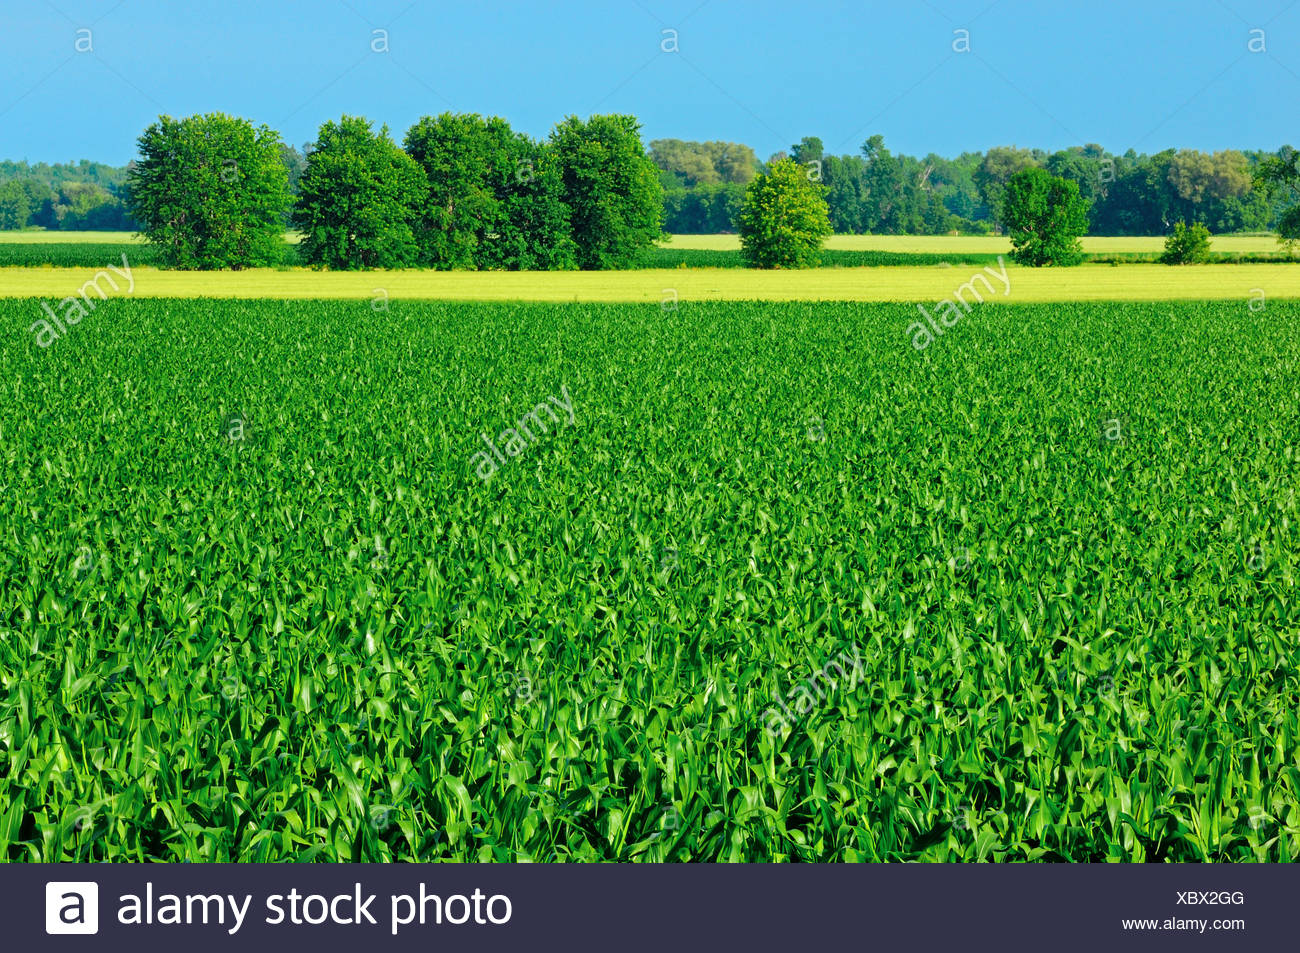 Agriculture - Mid growth pre-tassel grain corn fields / near Riceville, Ontario, Canada. - Stock Image